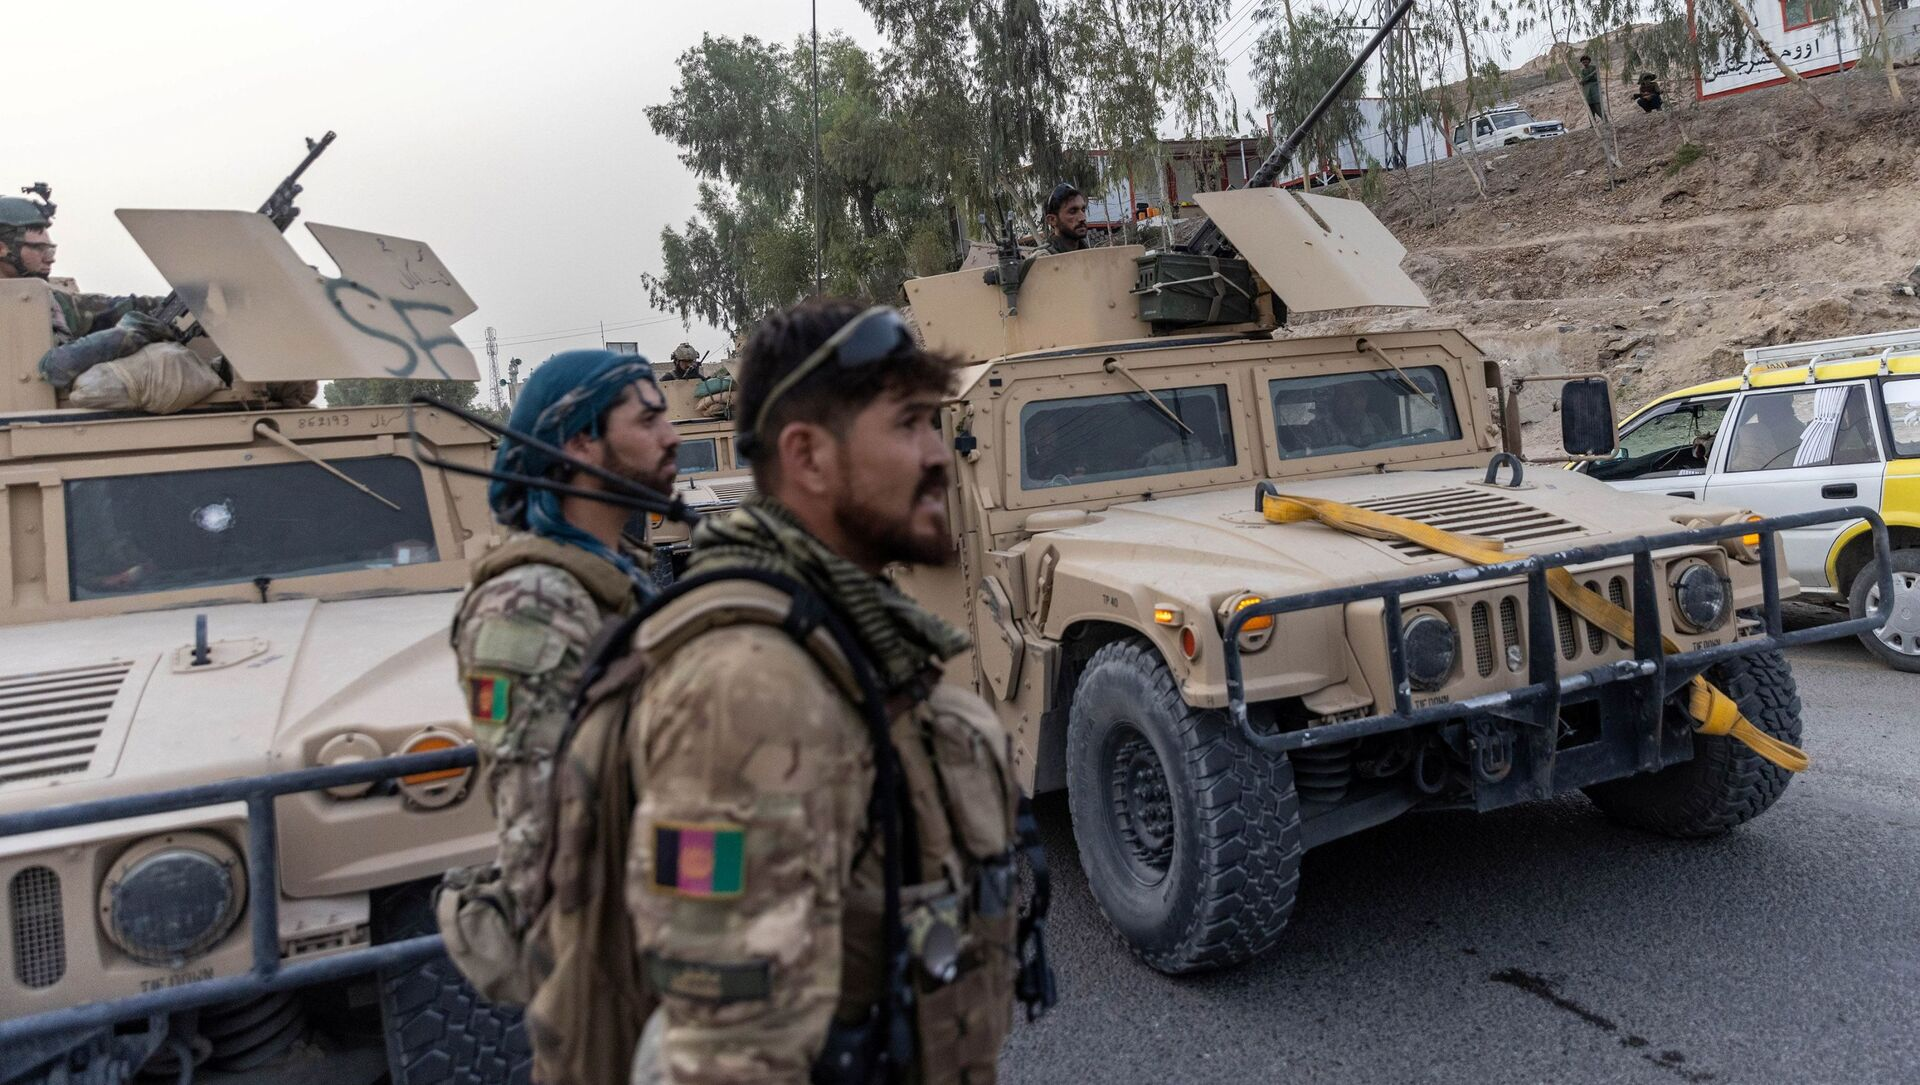 A convoy of Afghan Special Forces is seen during the rescue mission of a policeman besieged at a check post surrounded by Taliban, in Kandahar province, Afghanistan, July 13, 2021 - Sputnik International, 1920, 05.08.2021